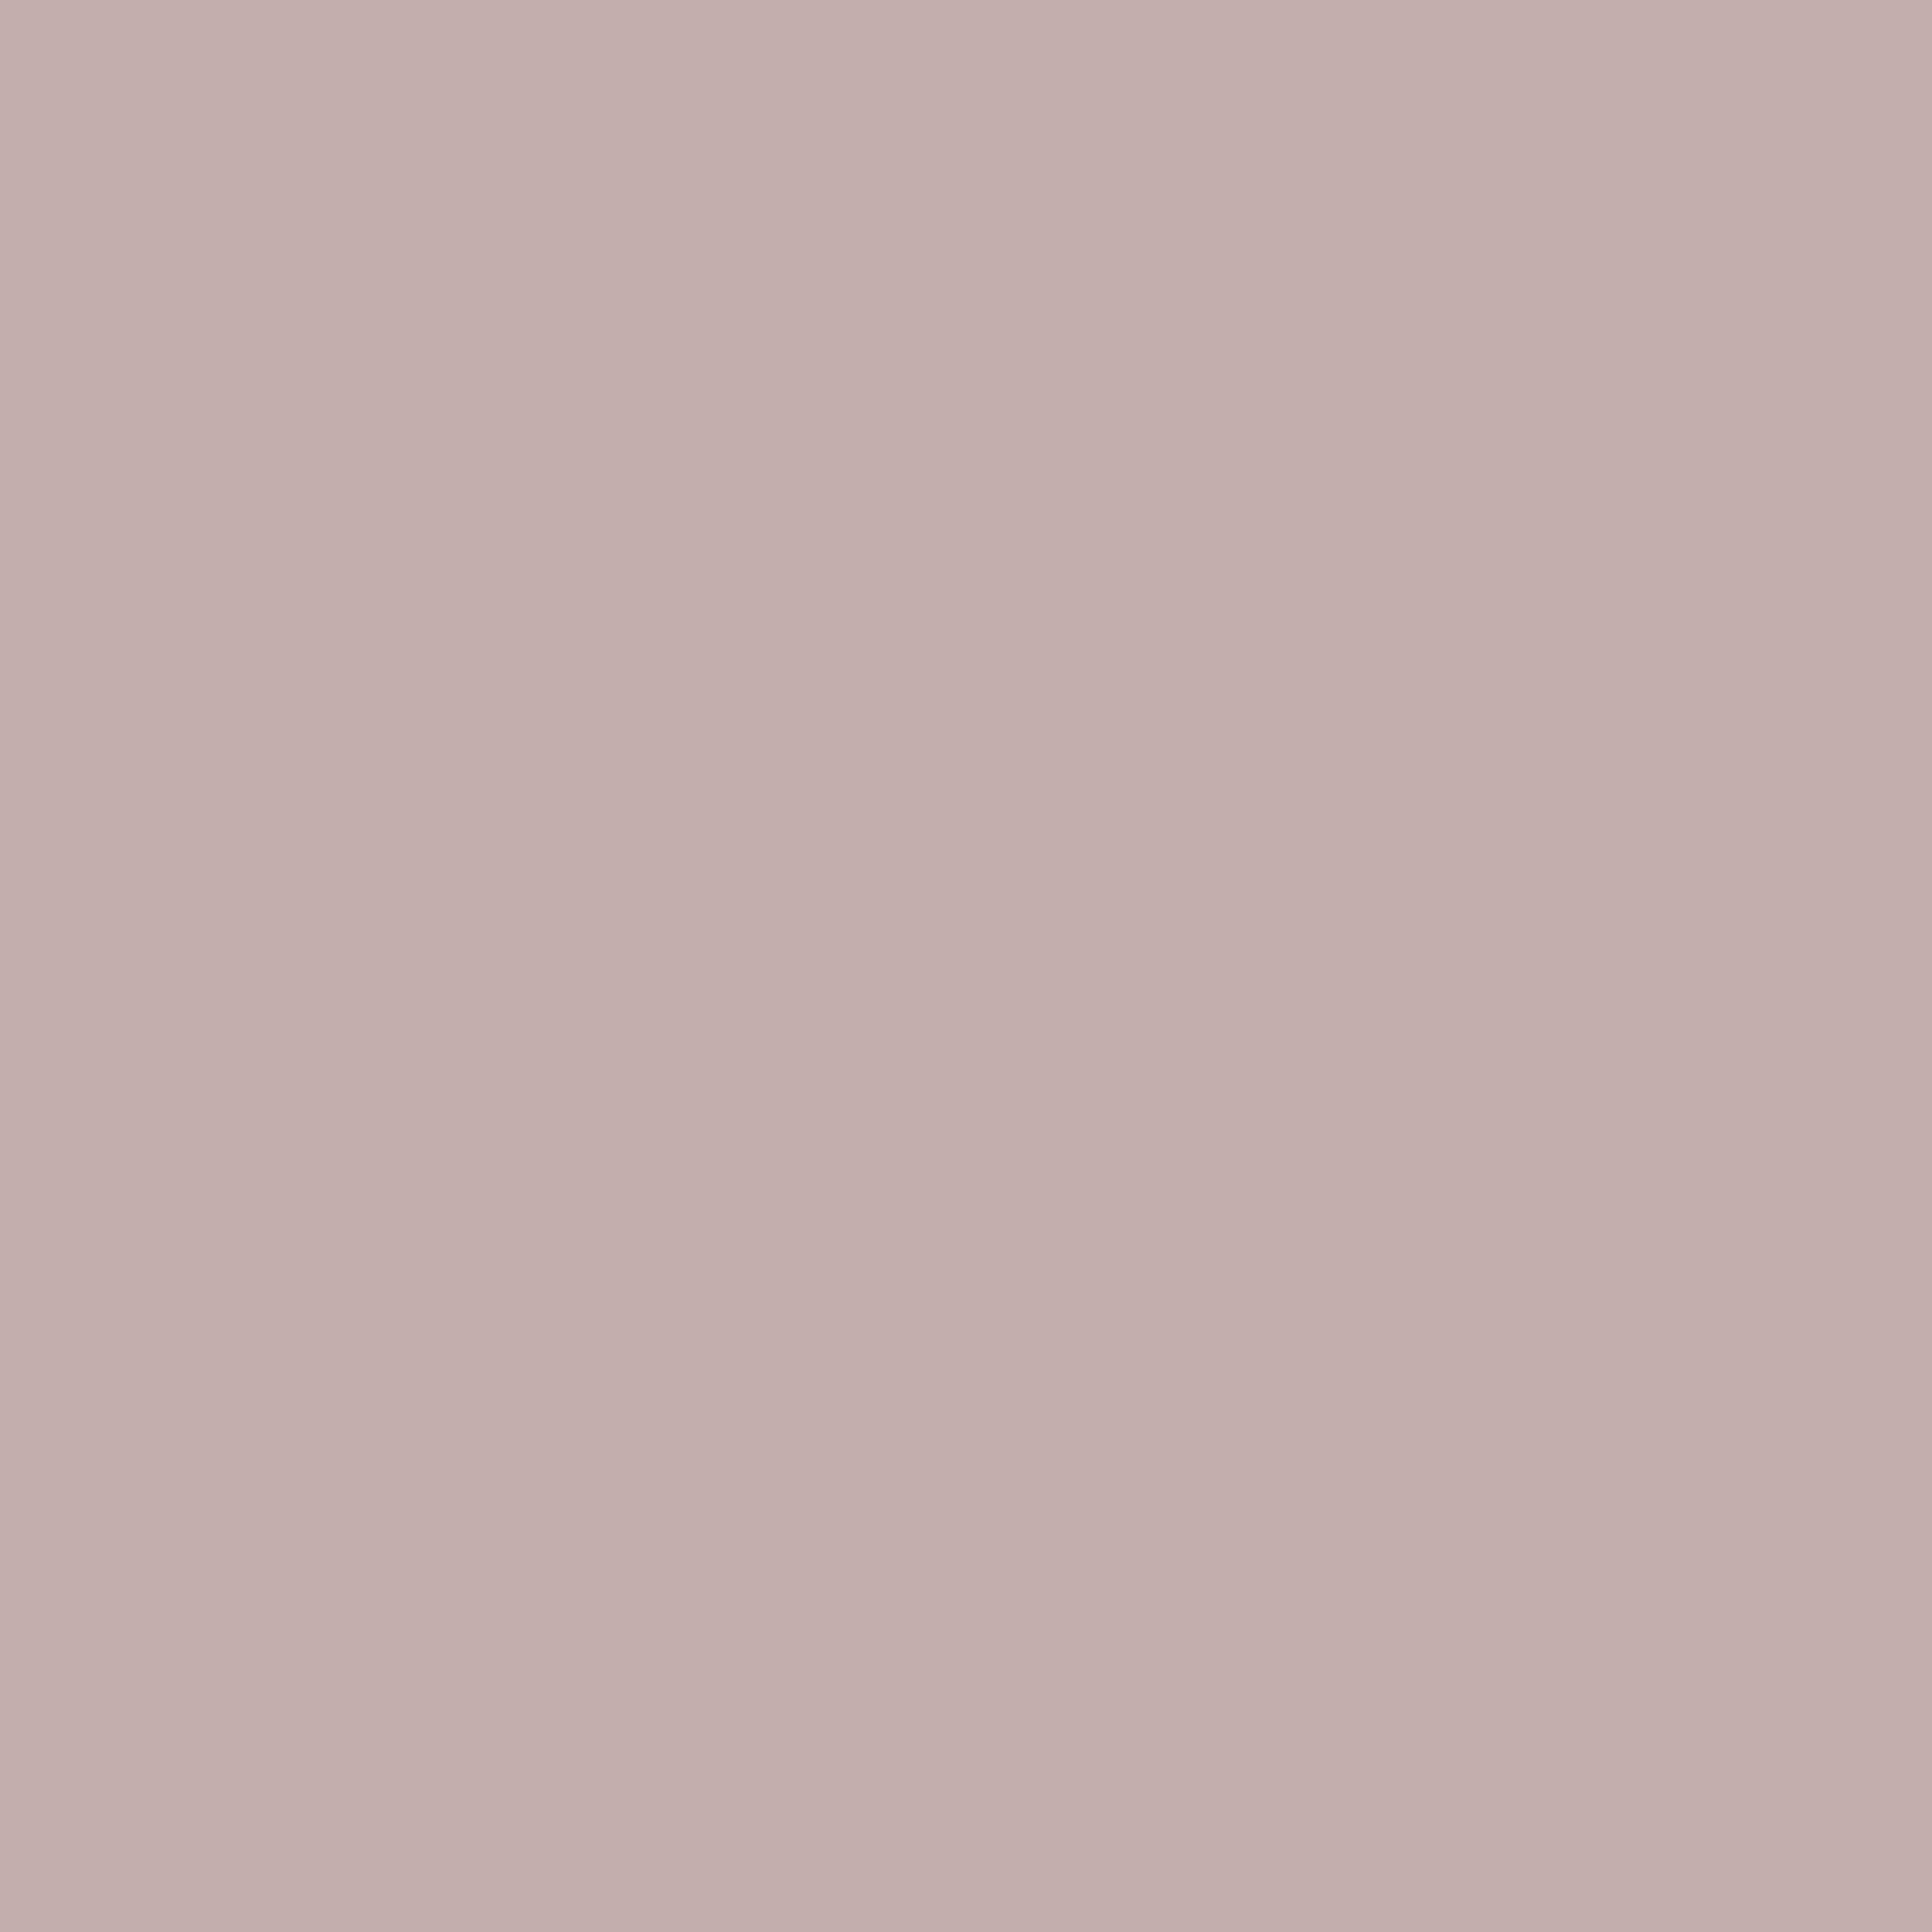 2732x2732 Silver Pink Solid Color Background